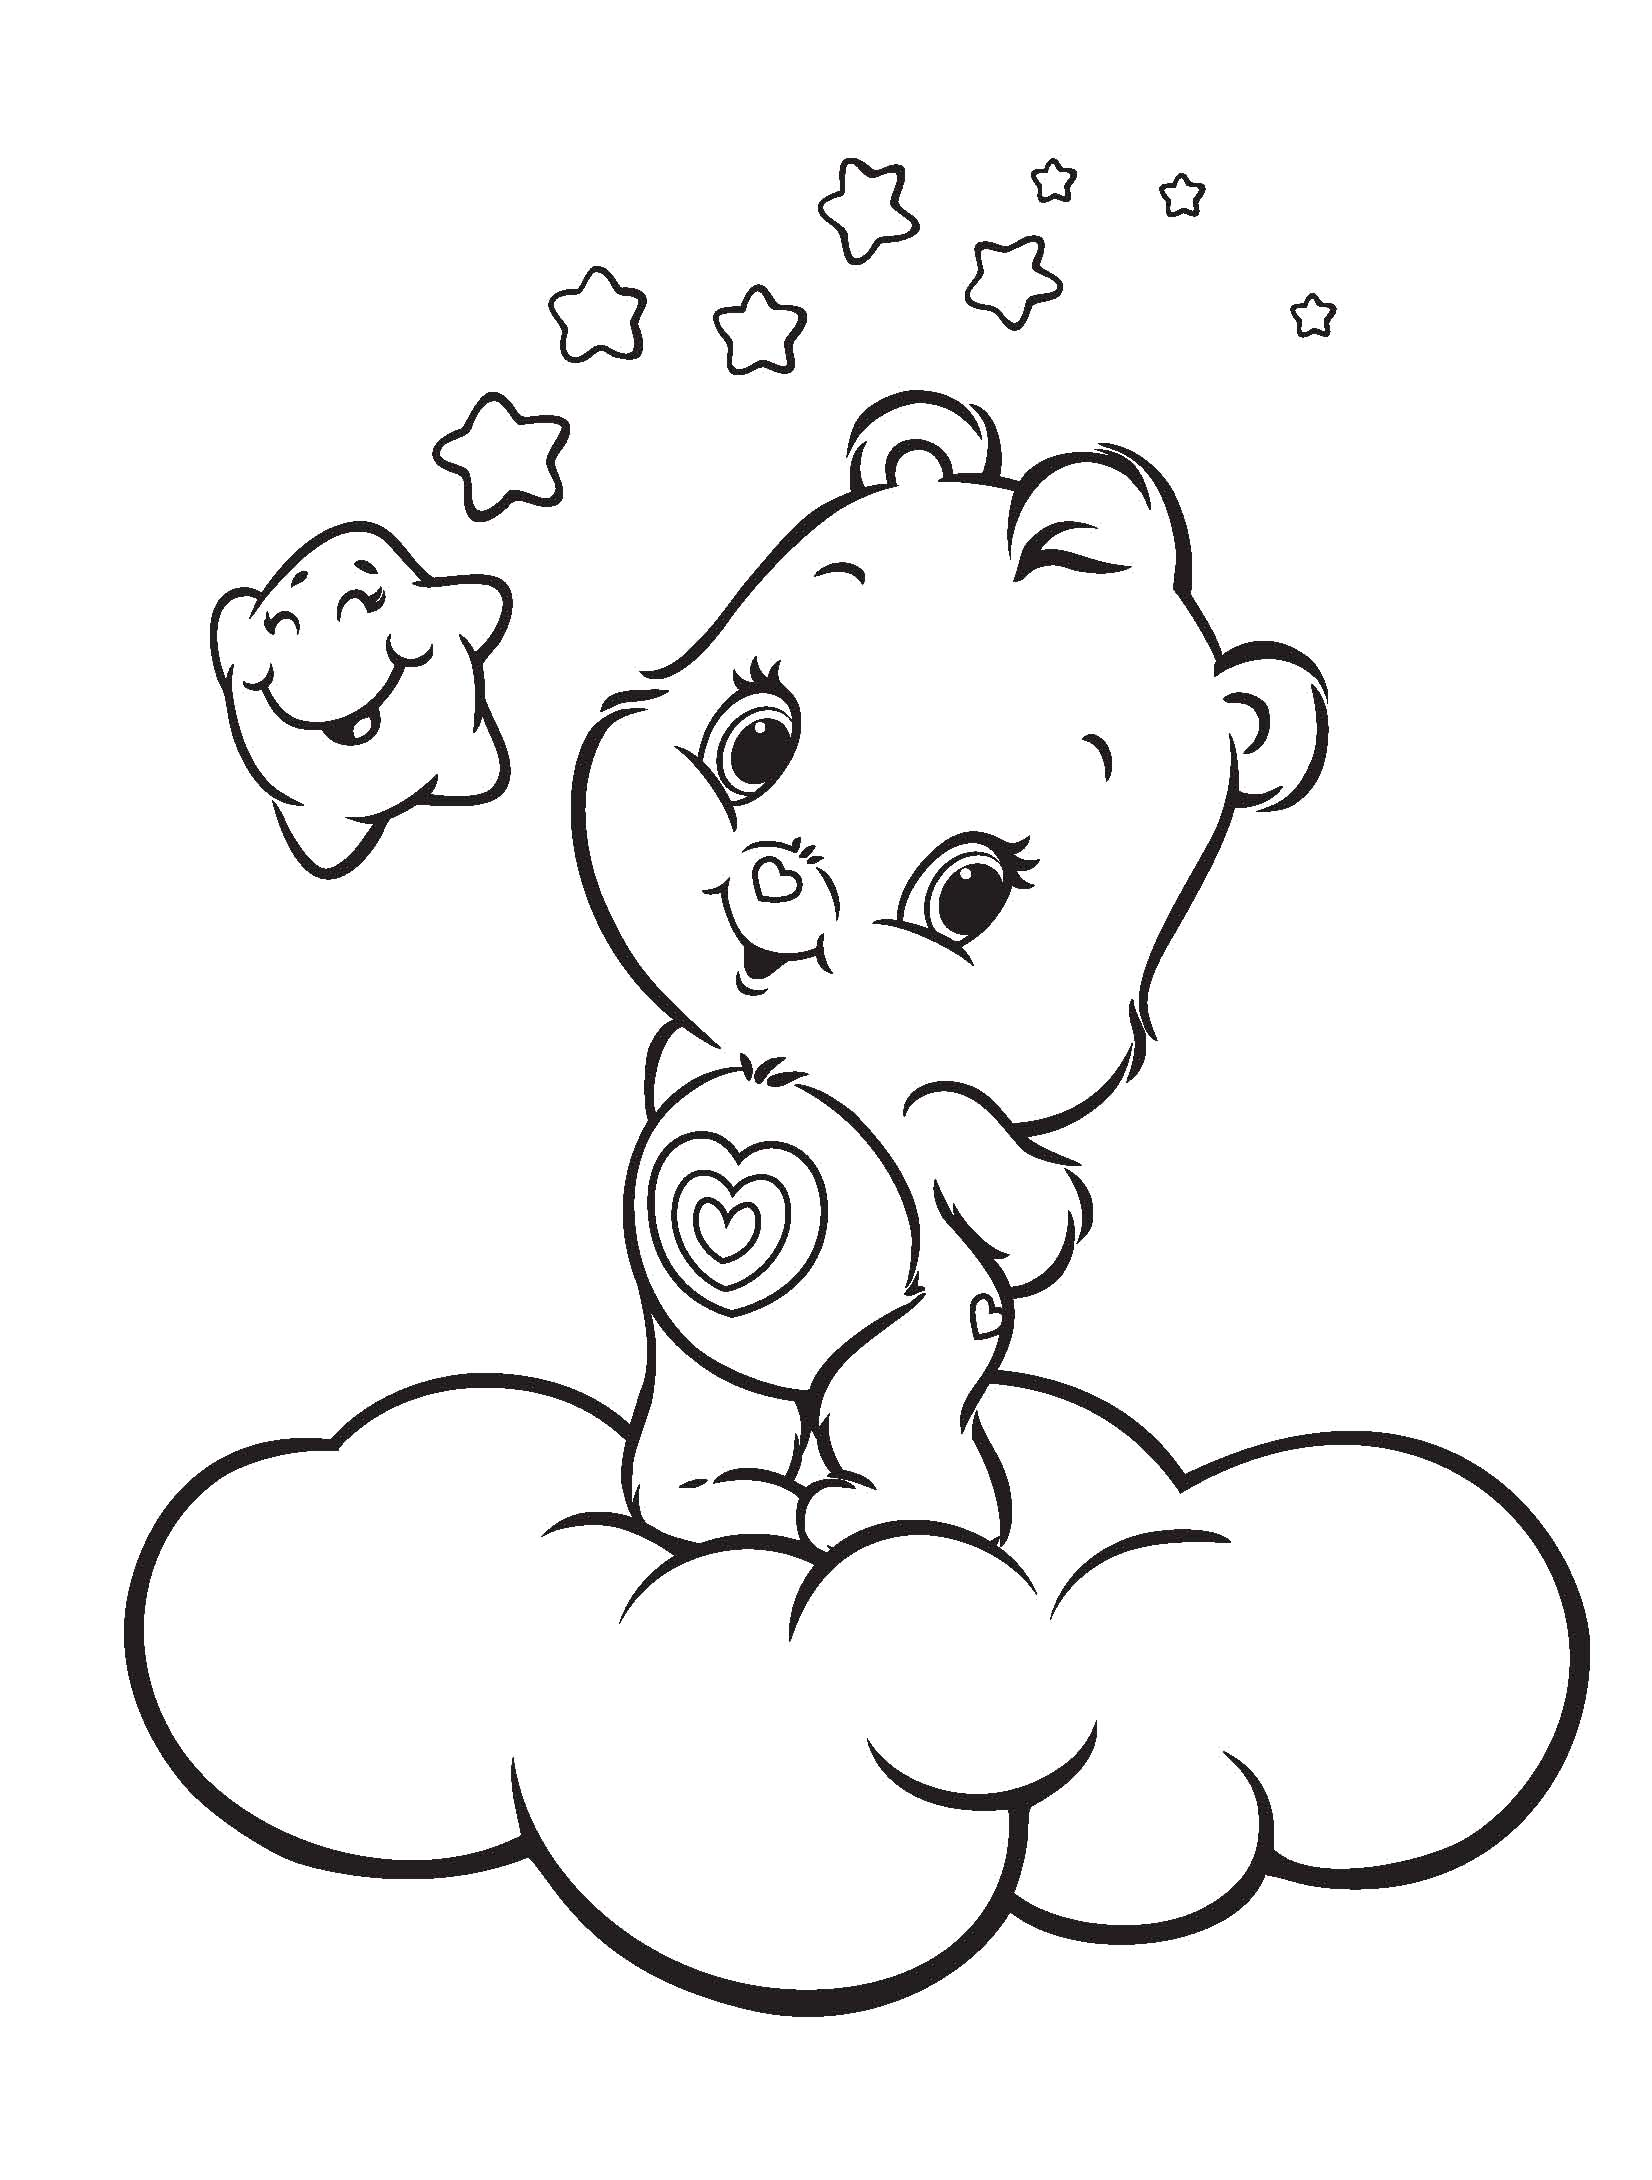 Free Printable Care Bear Coloring Pages For Kids Care Bears Printable Coloring Pages